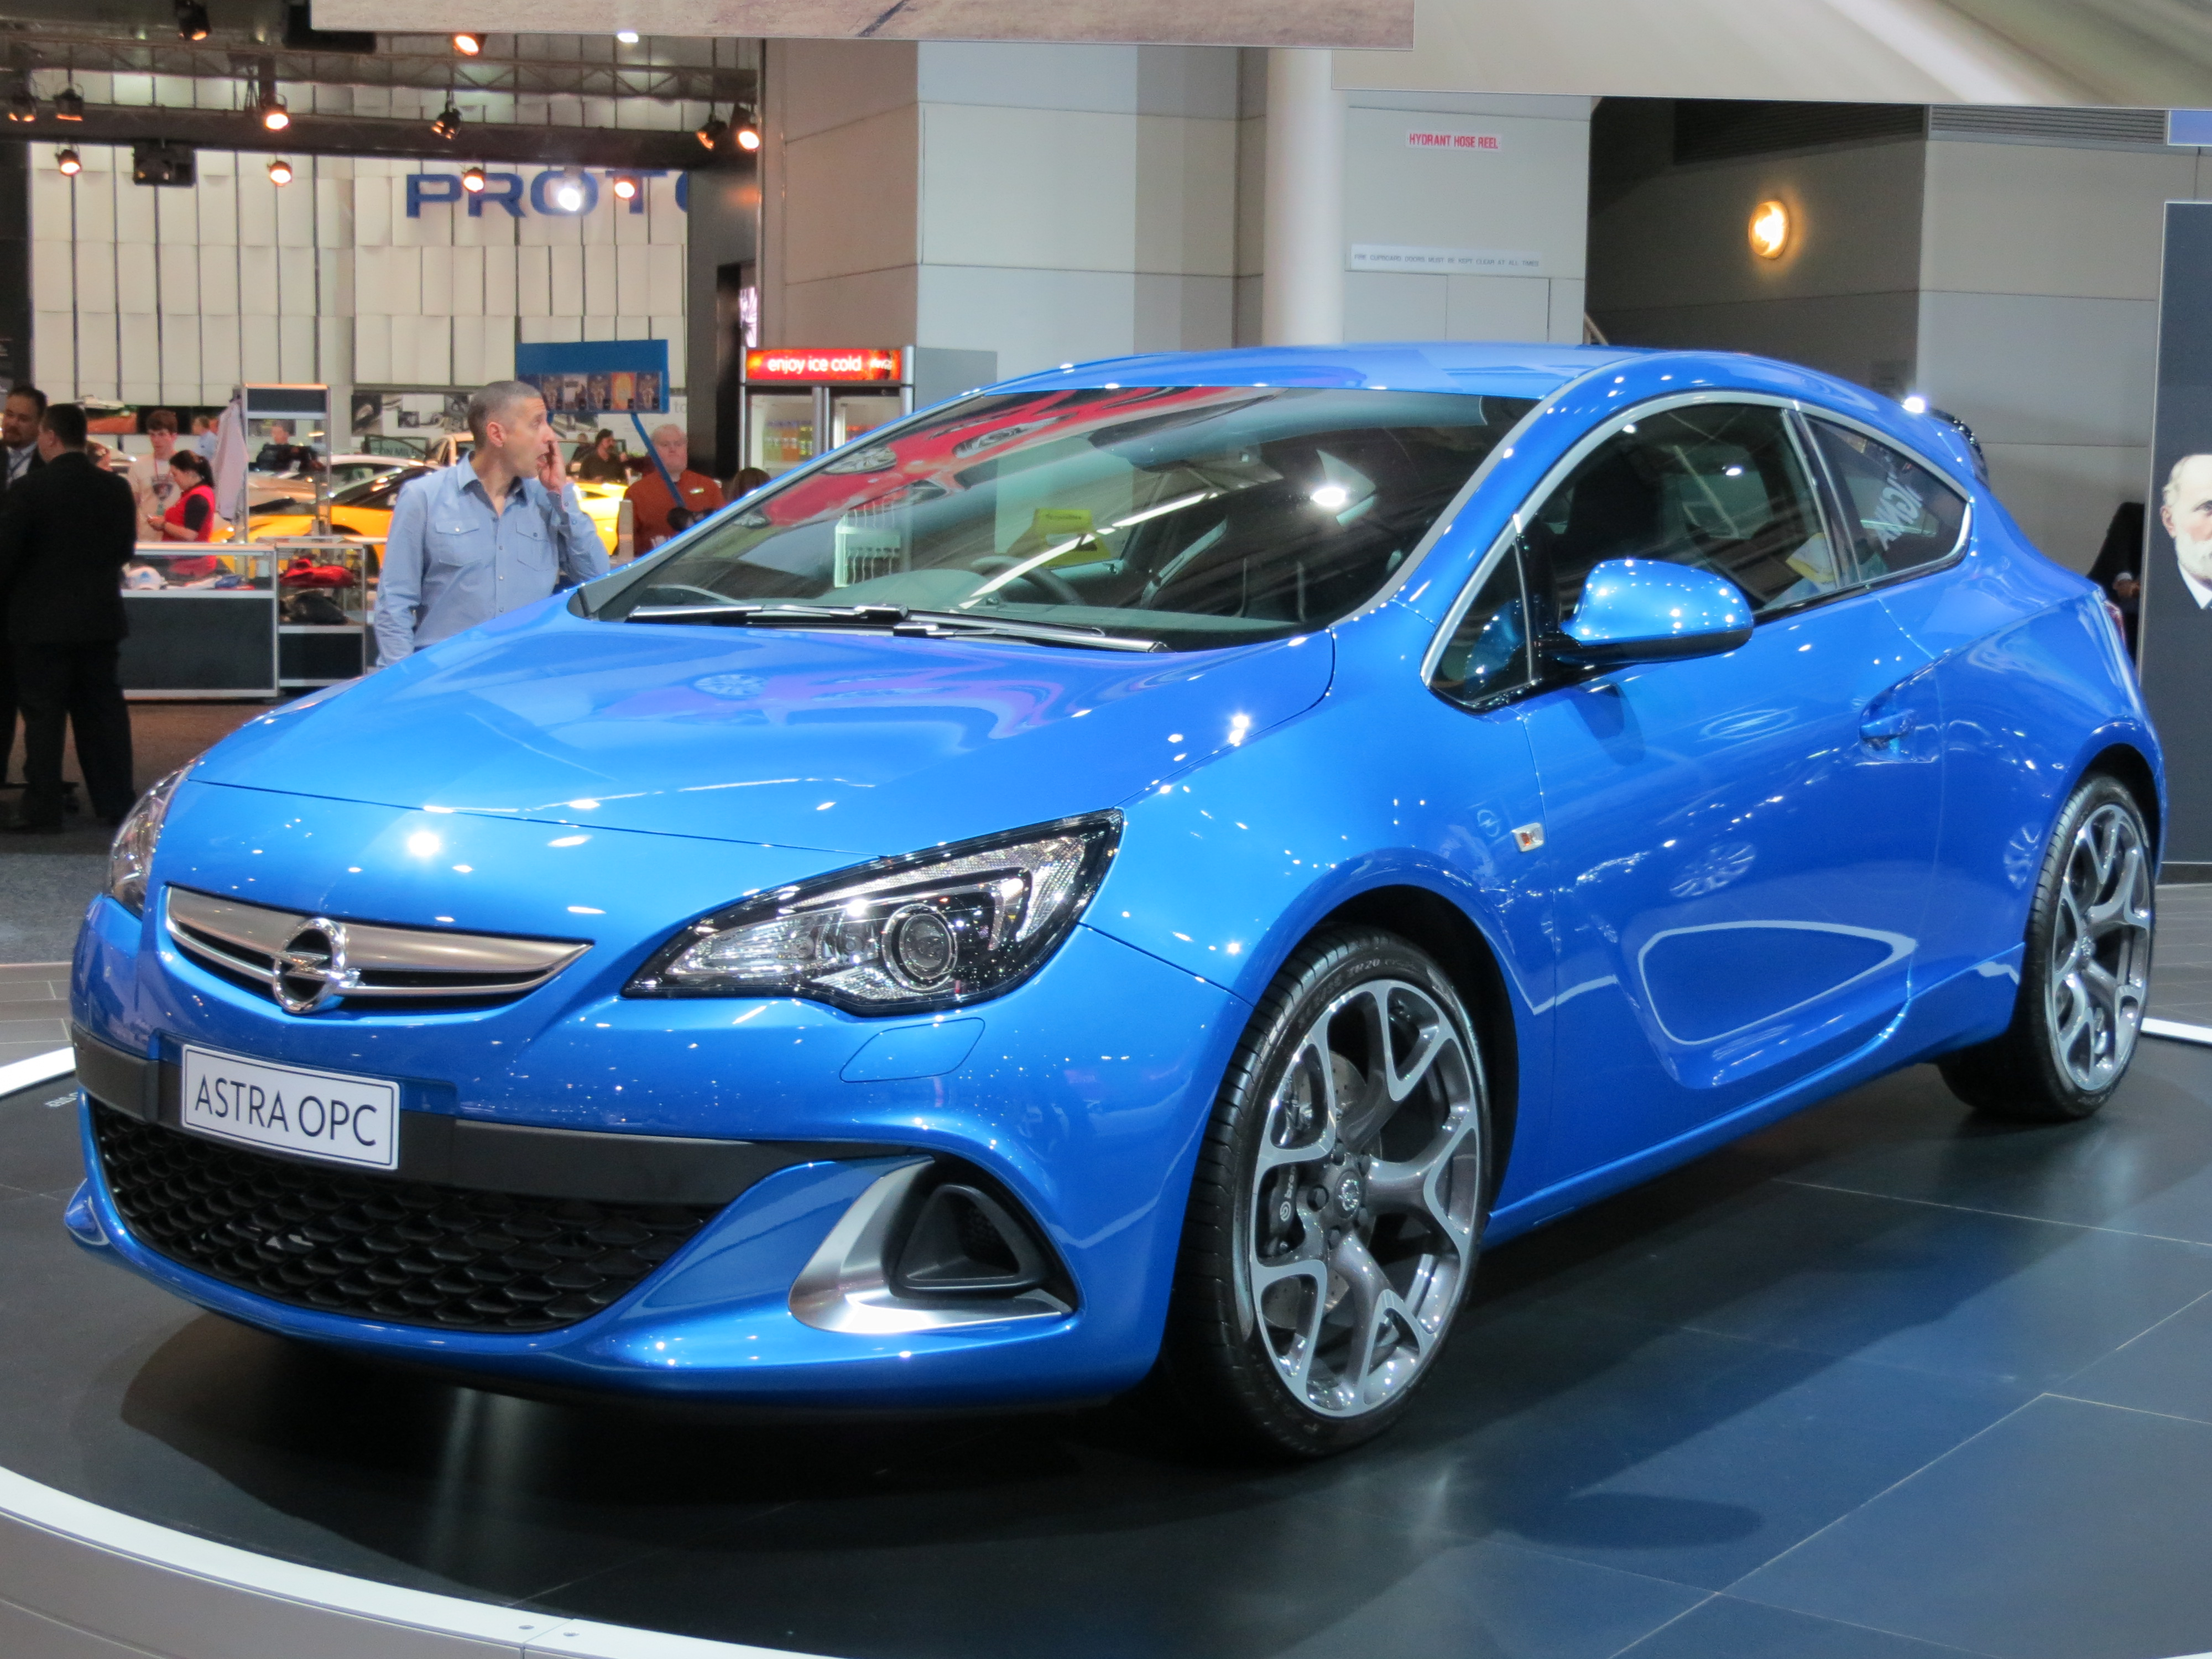 file 2012 opel astra as opc 3 door hatchback 2012 10 26 wikimedia commons. Black Bedroom Furniture Sets. Home Design Ideas